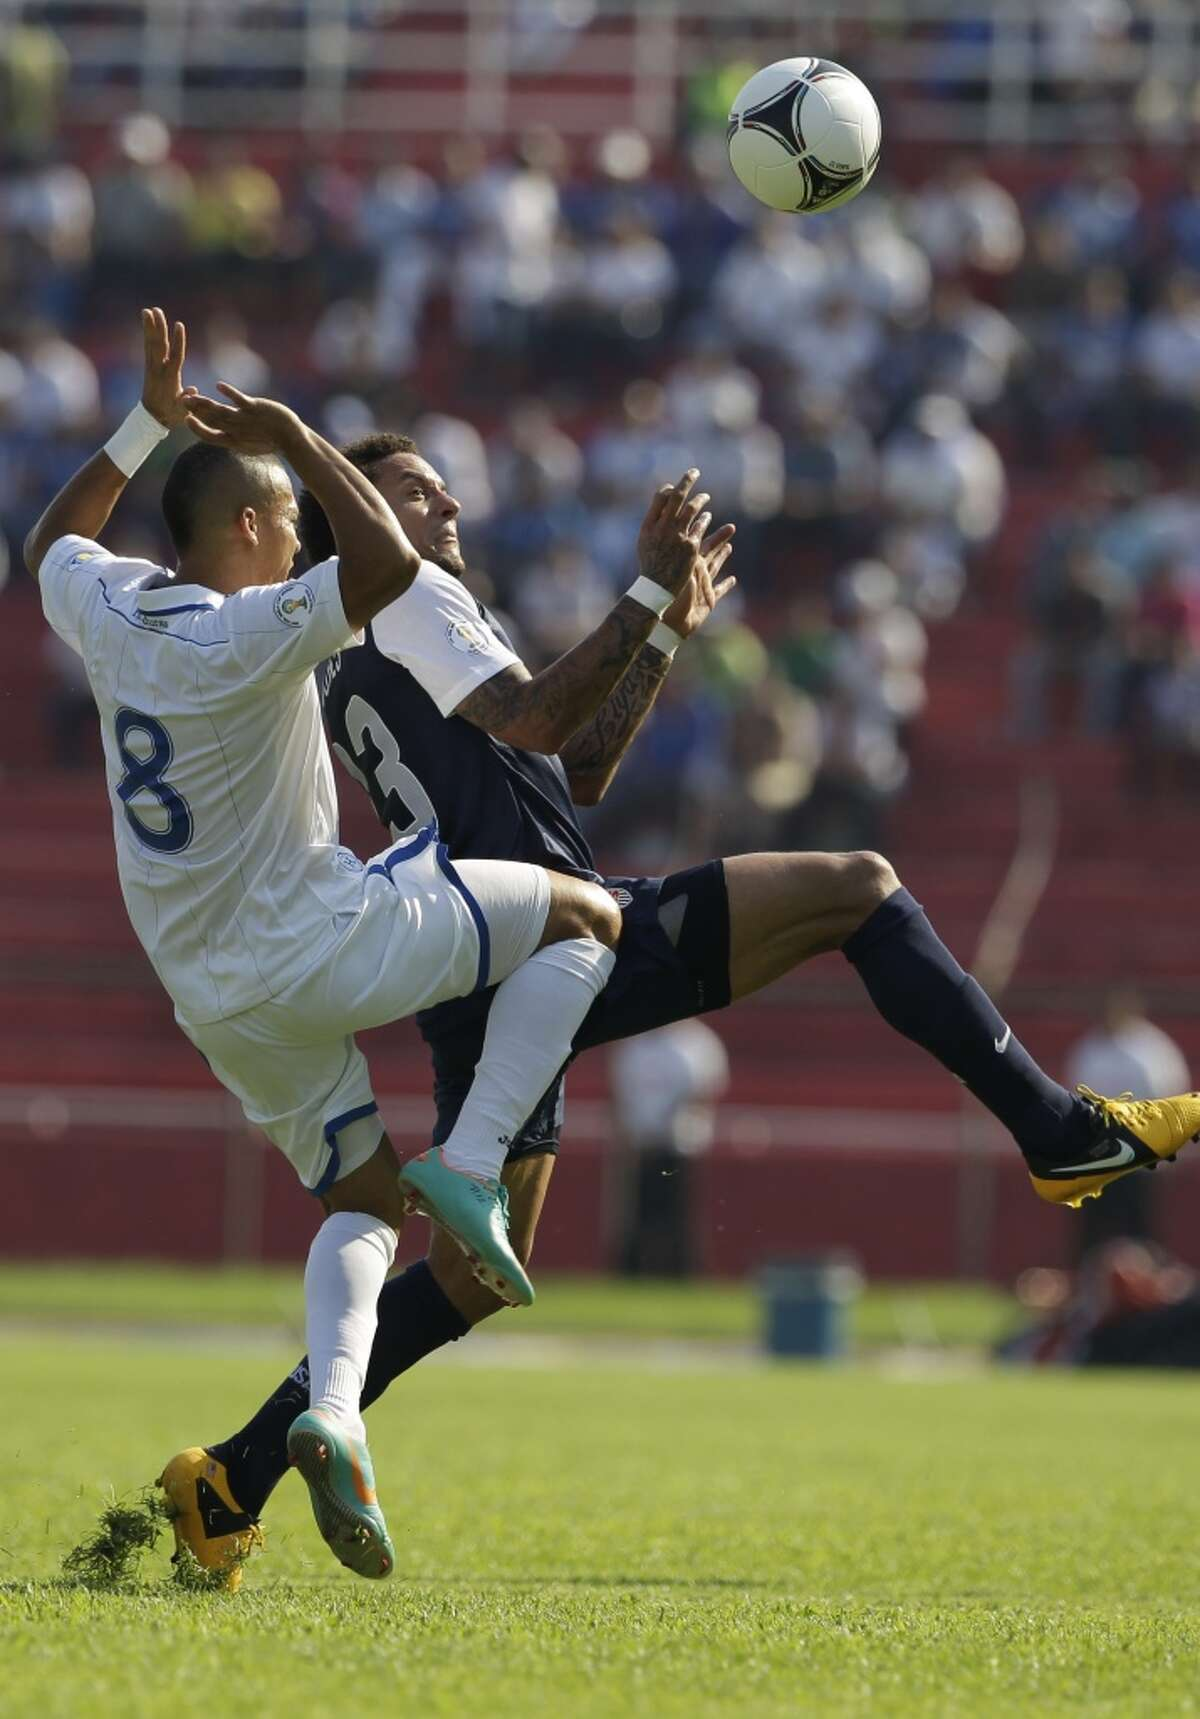 The Football War In 1969, at a World Cup qualifying match, tensions erupted between Honduras and El Salvador. El Salvador launched a military attack on July 14. The war lasted 100 hours, but the countries are still at odds with each other over immigration.